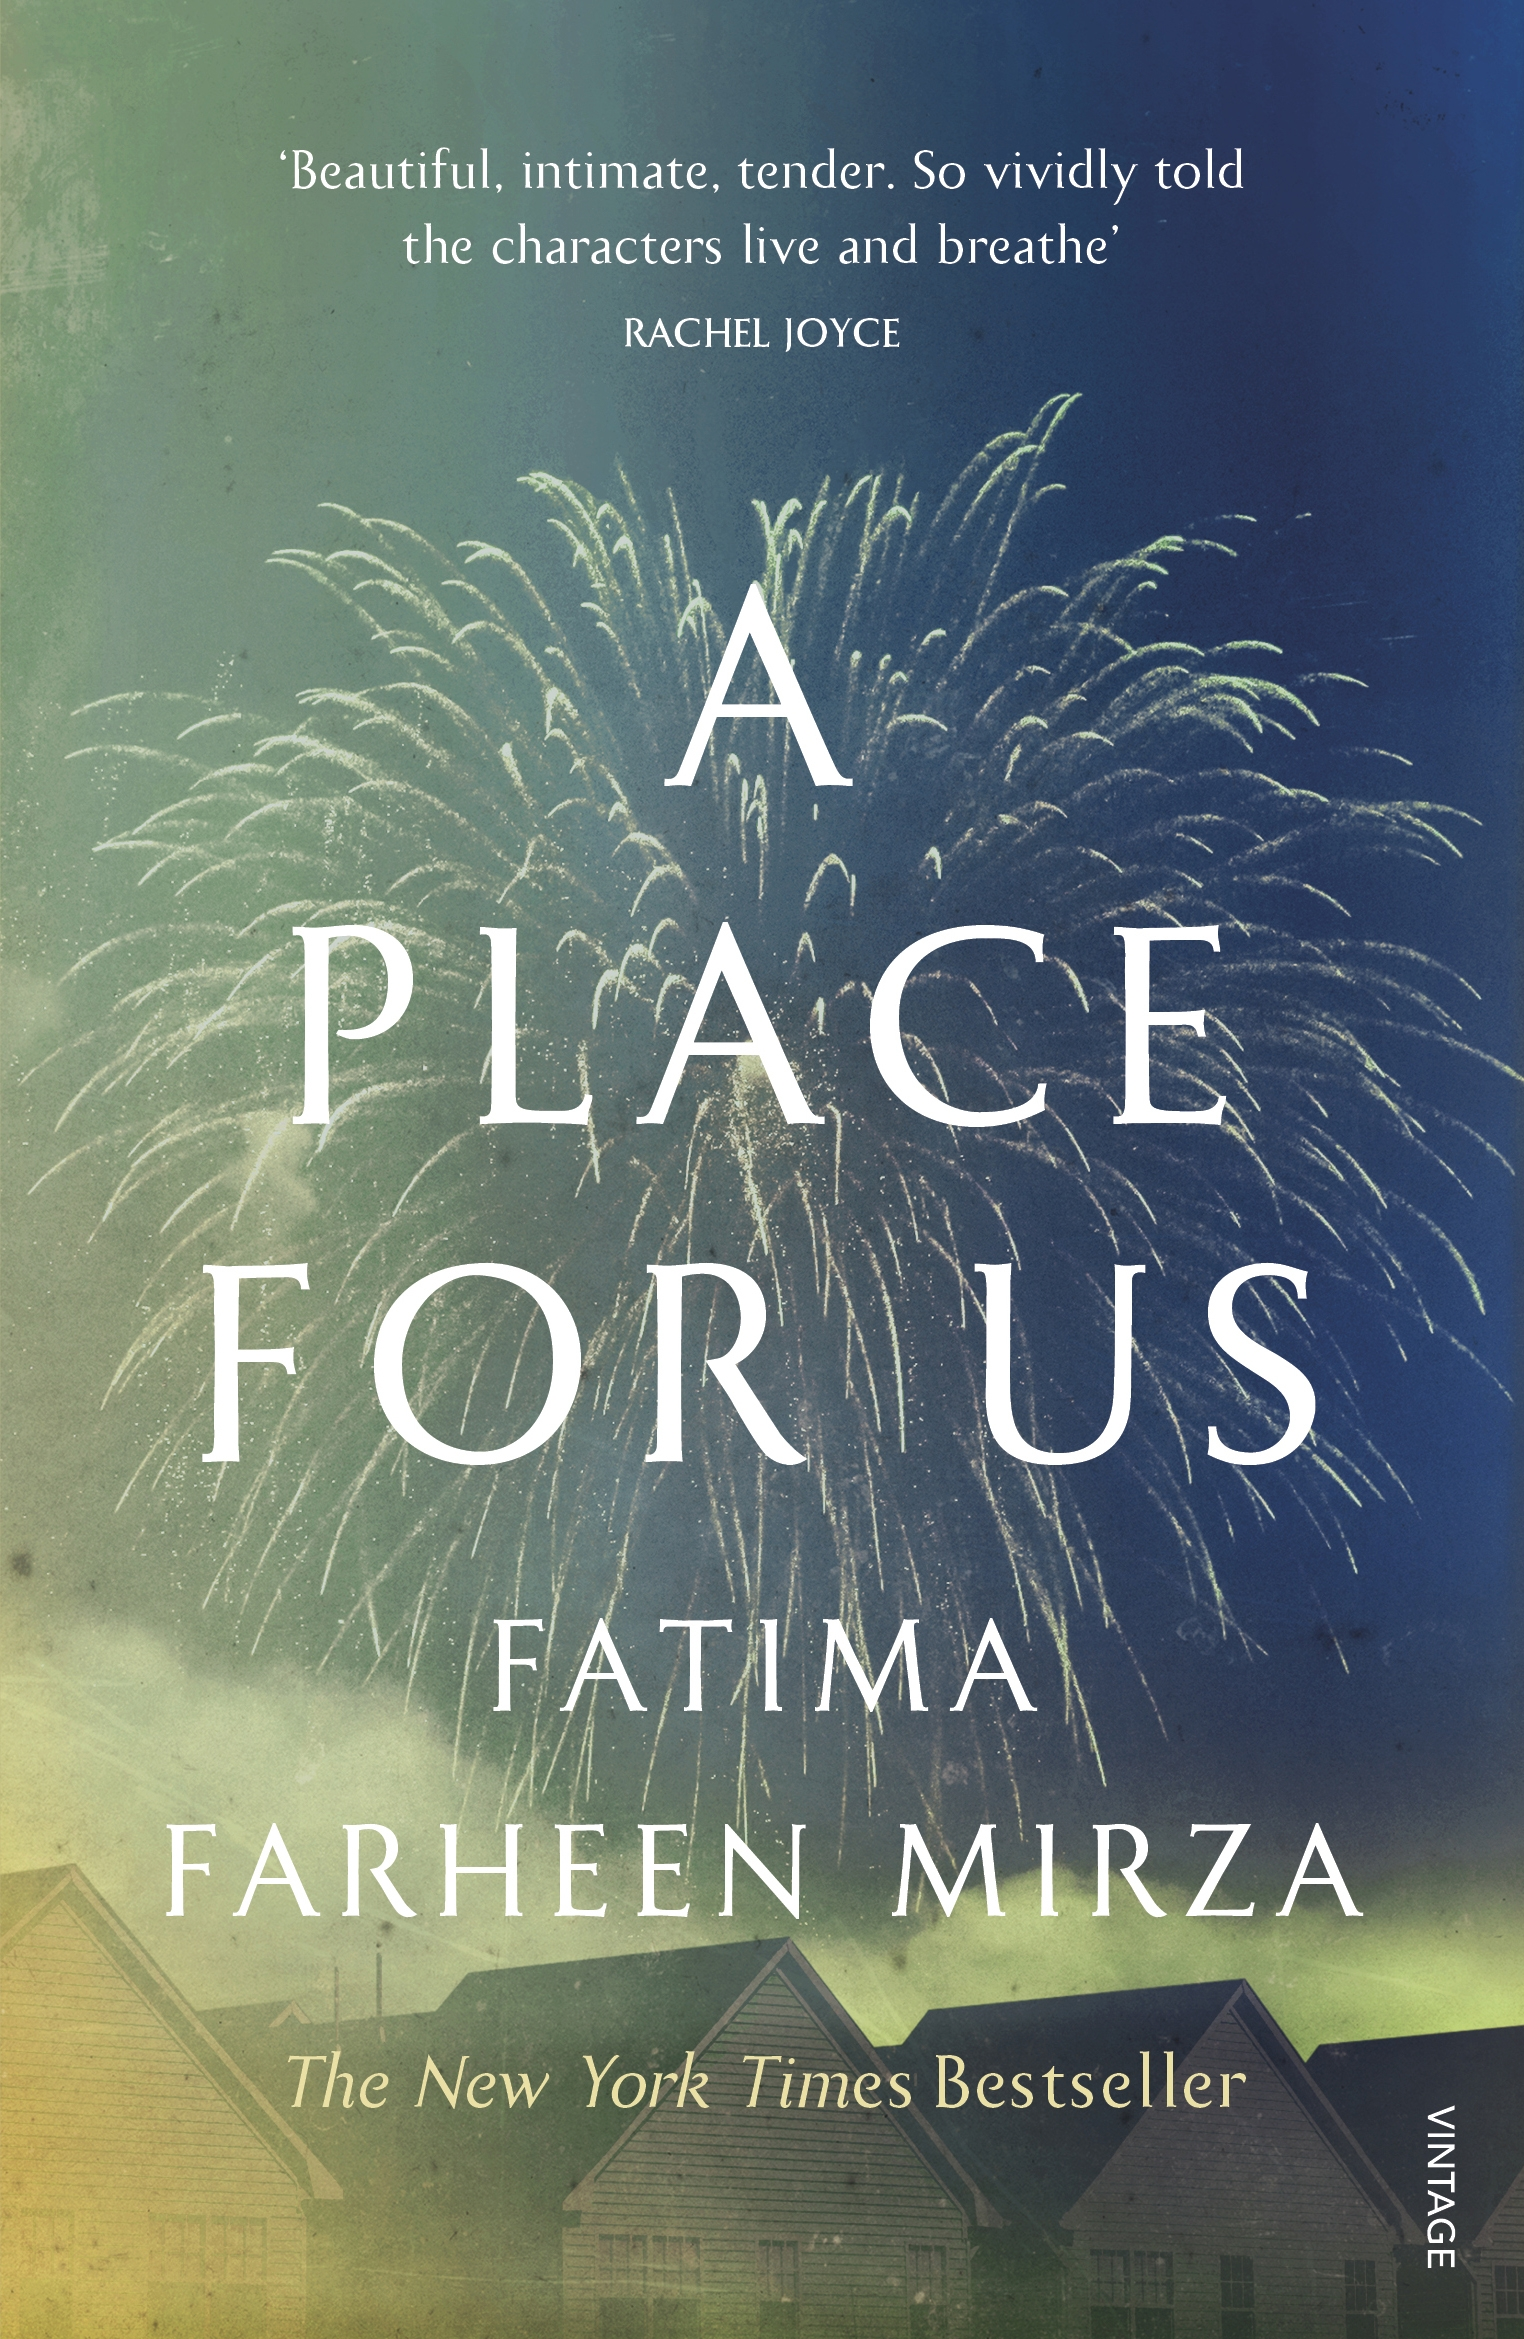 Book Club Questions for A Place for Us by Fatima Farheen